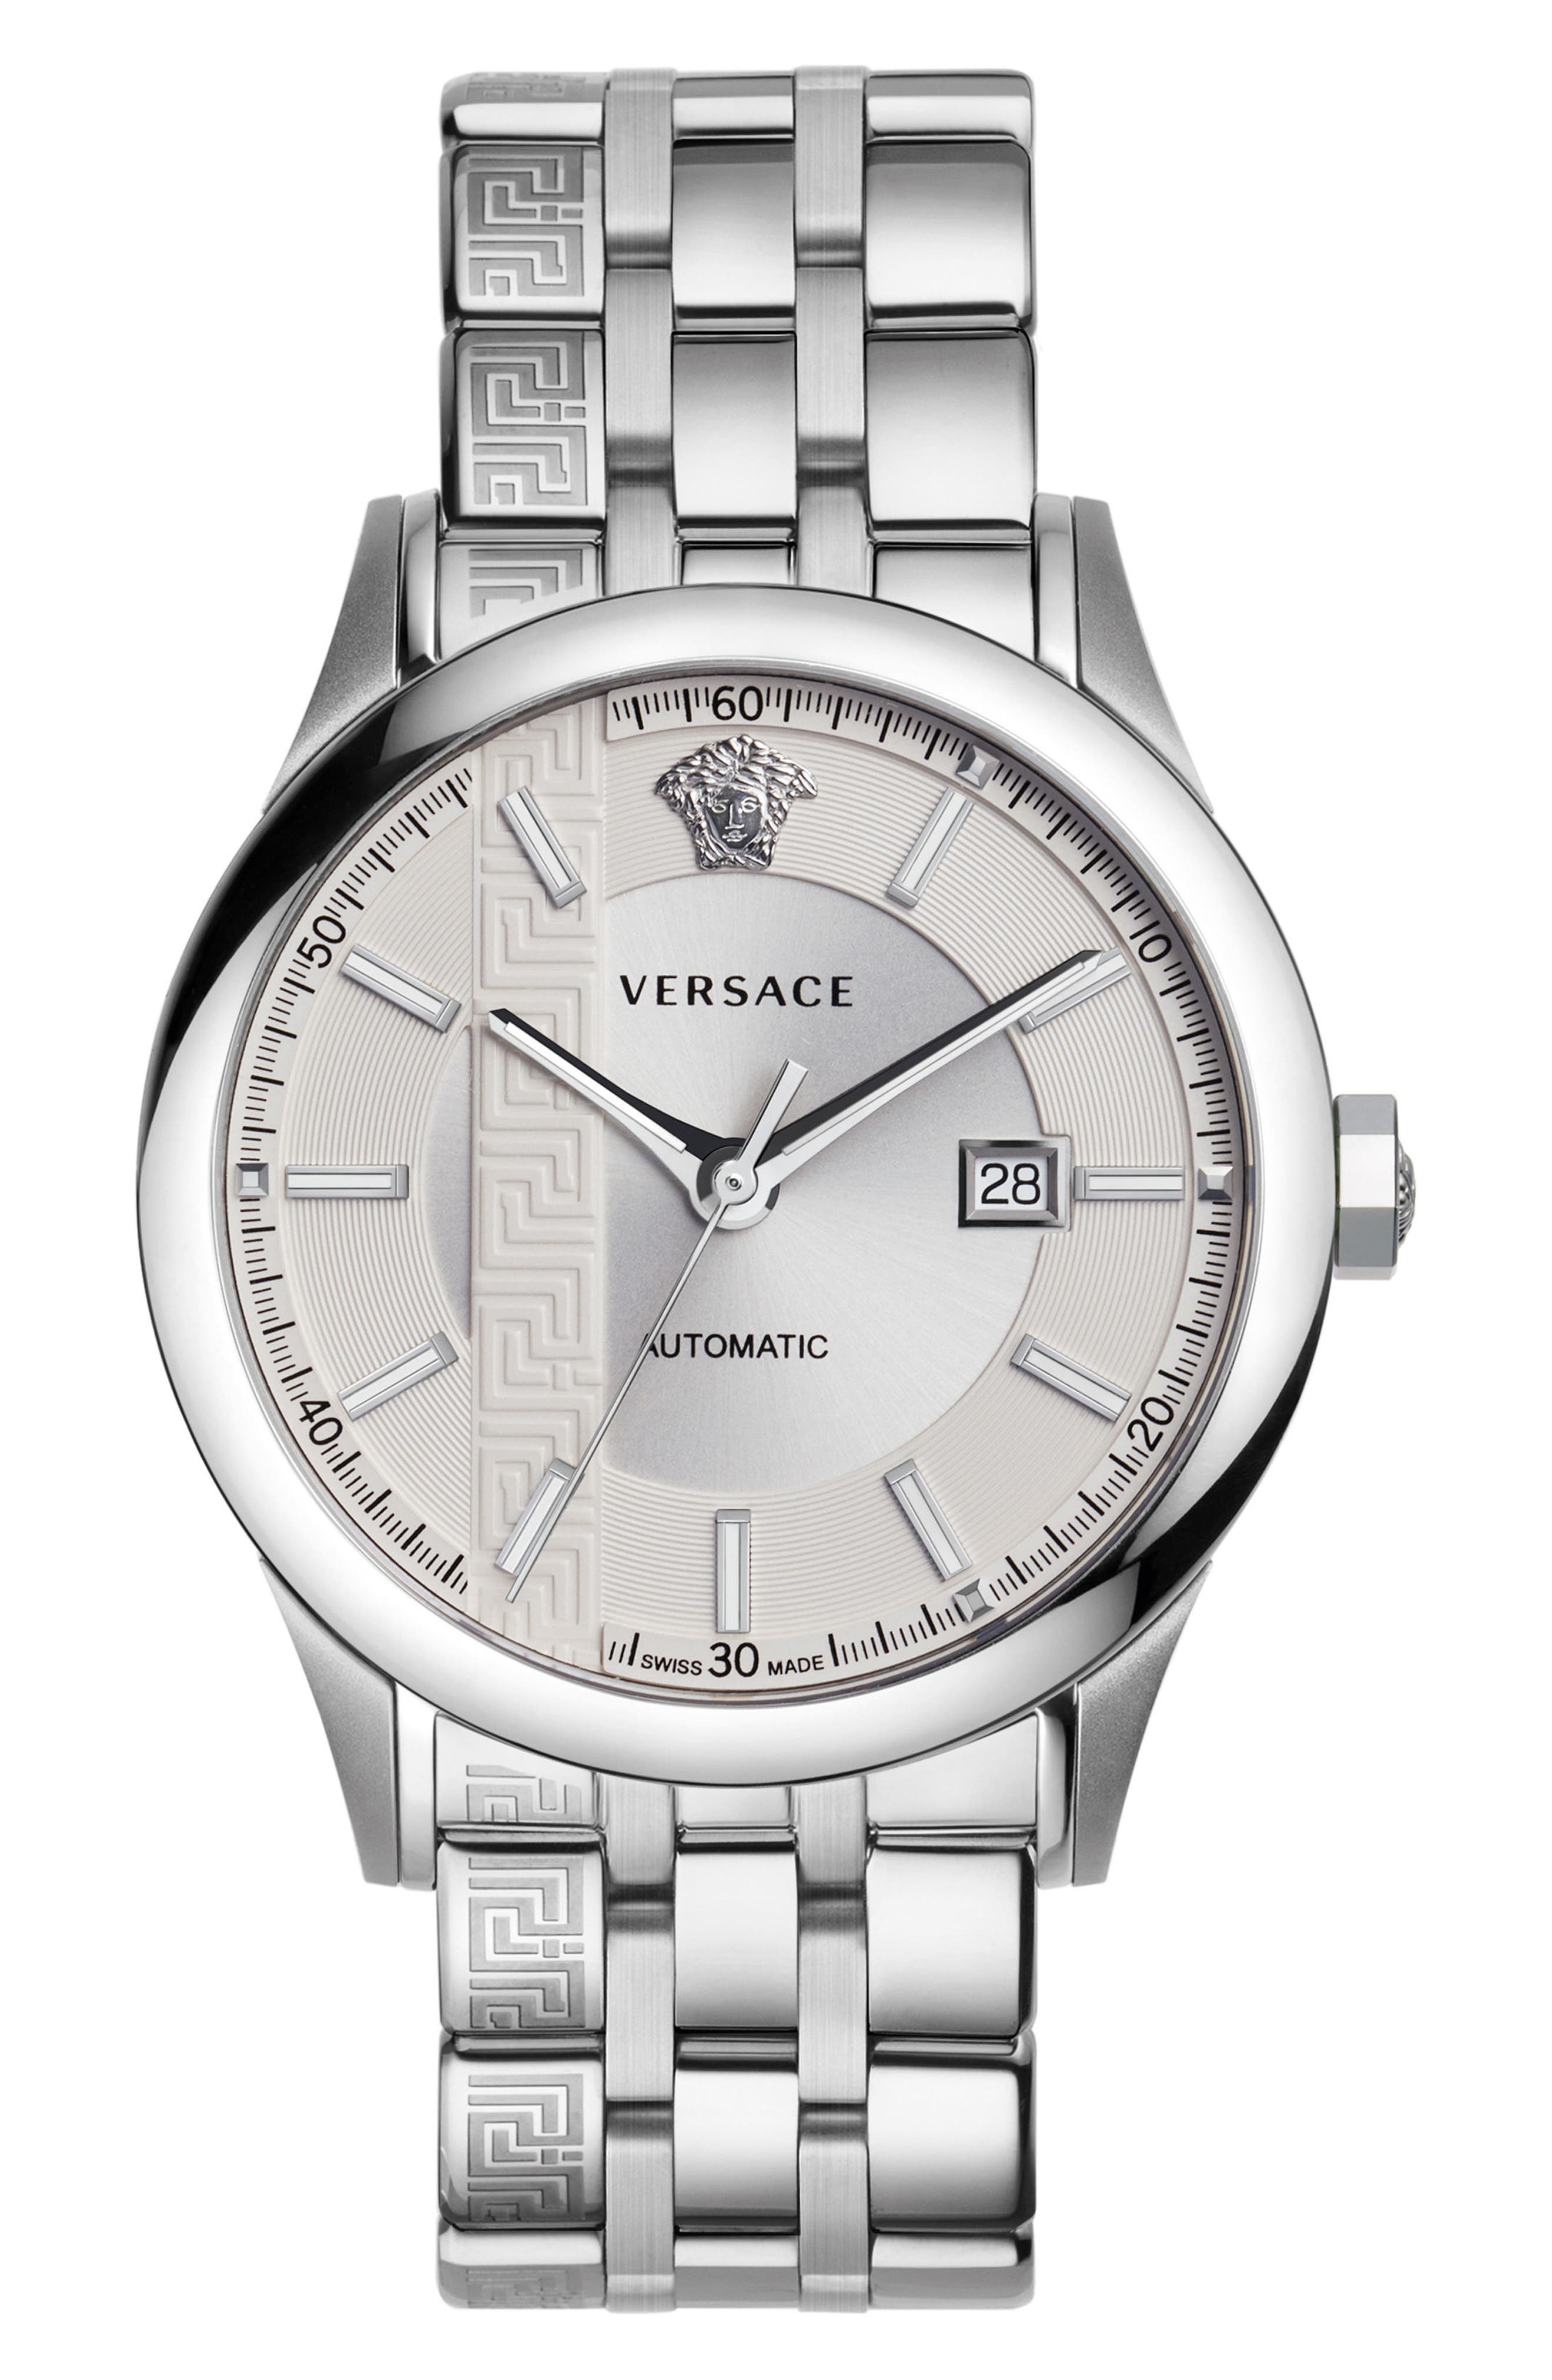 Main Image - Versace Aiakos Automatic Bracelet Watch, 44mm